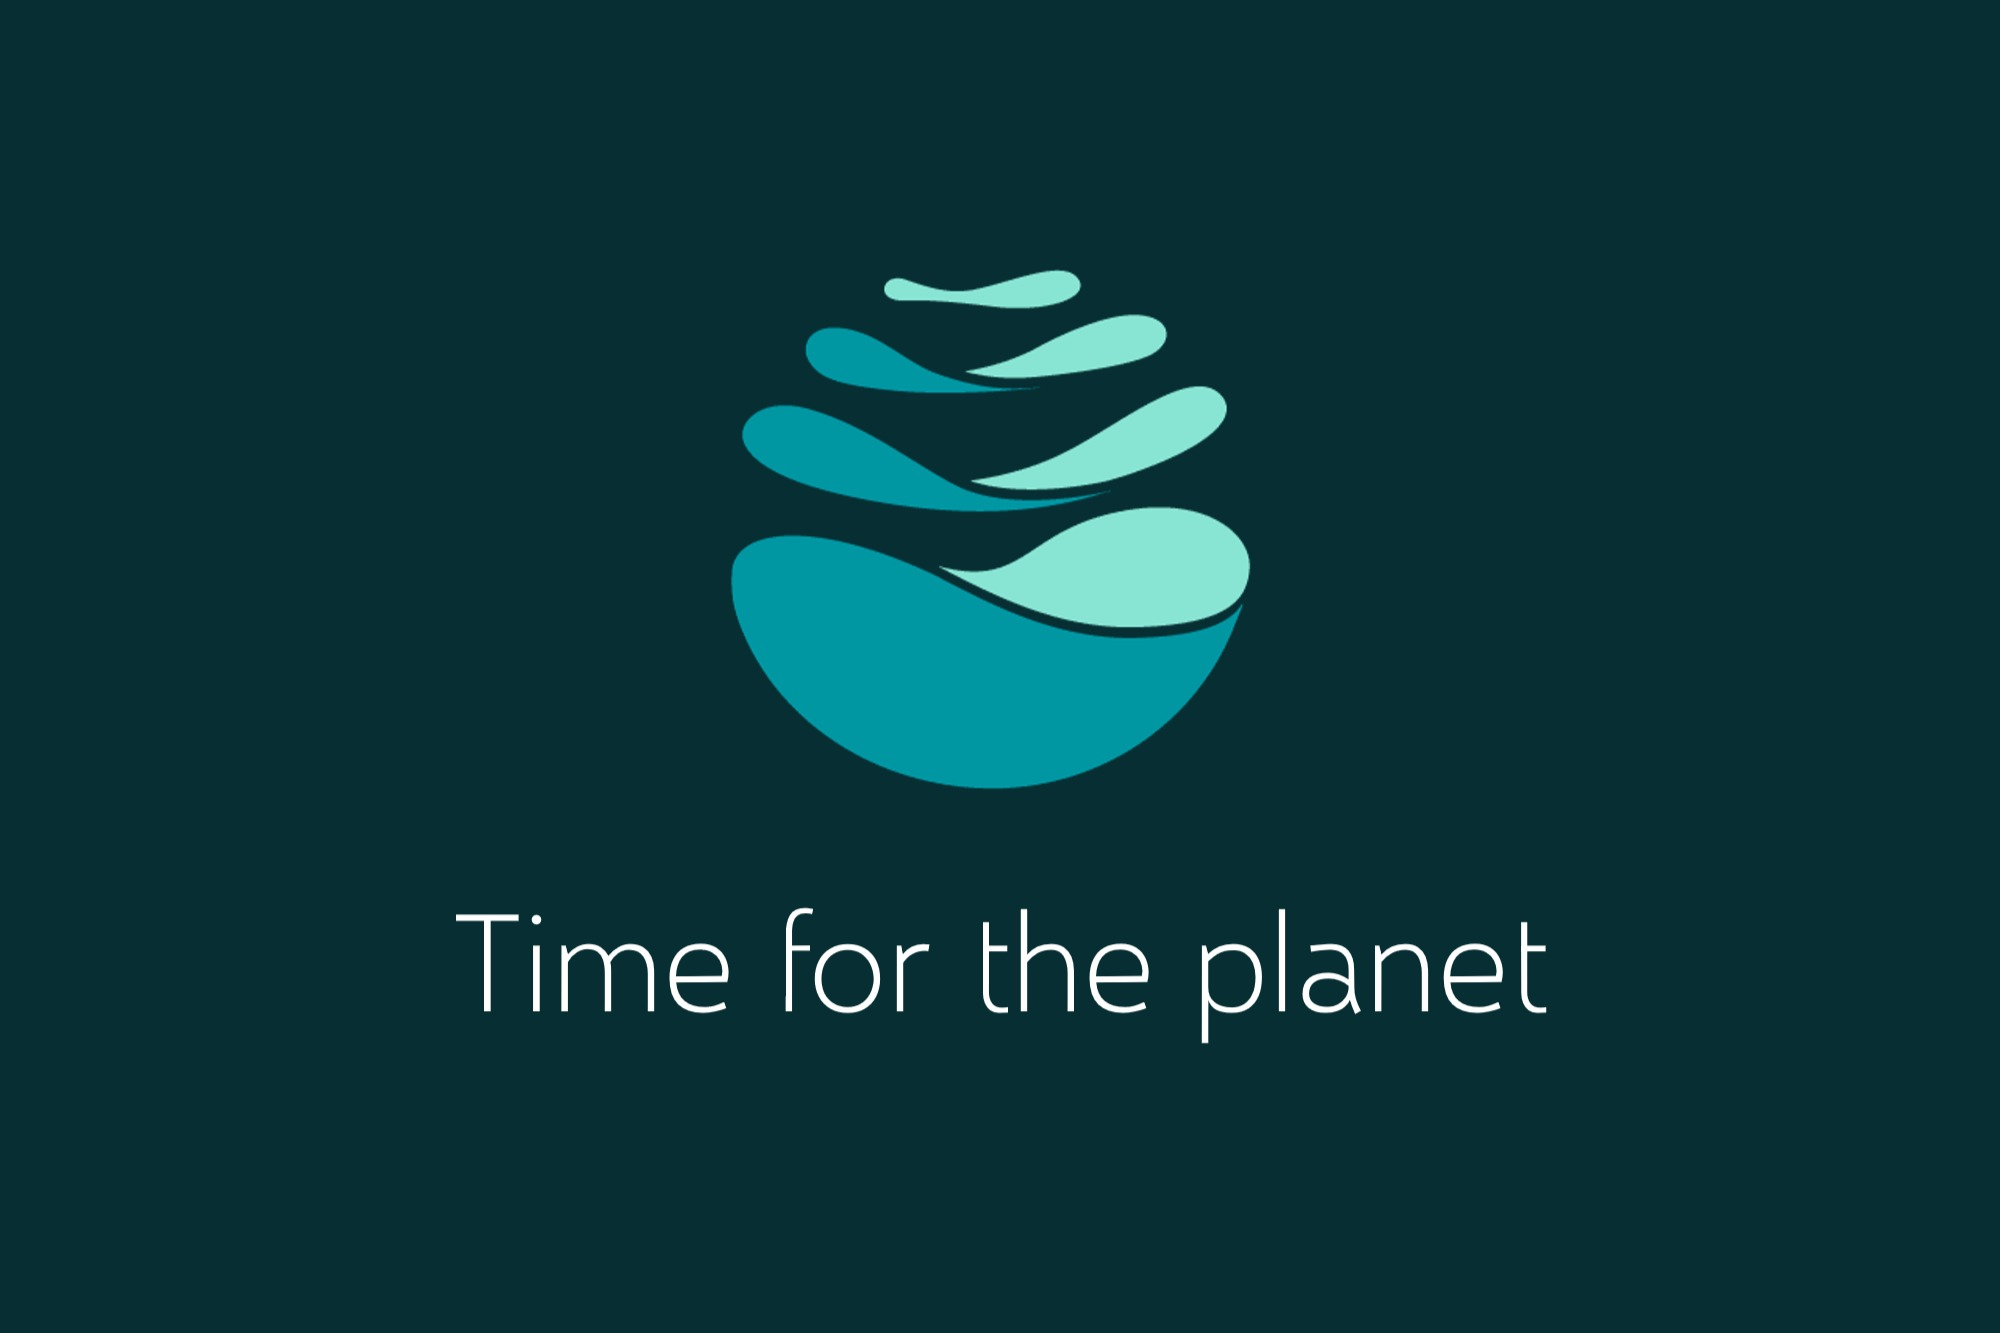 Rencontre avec Mehdi Coly, co-fondateur de Time for the Planet